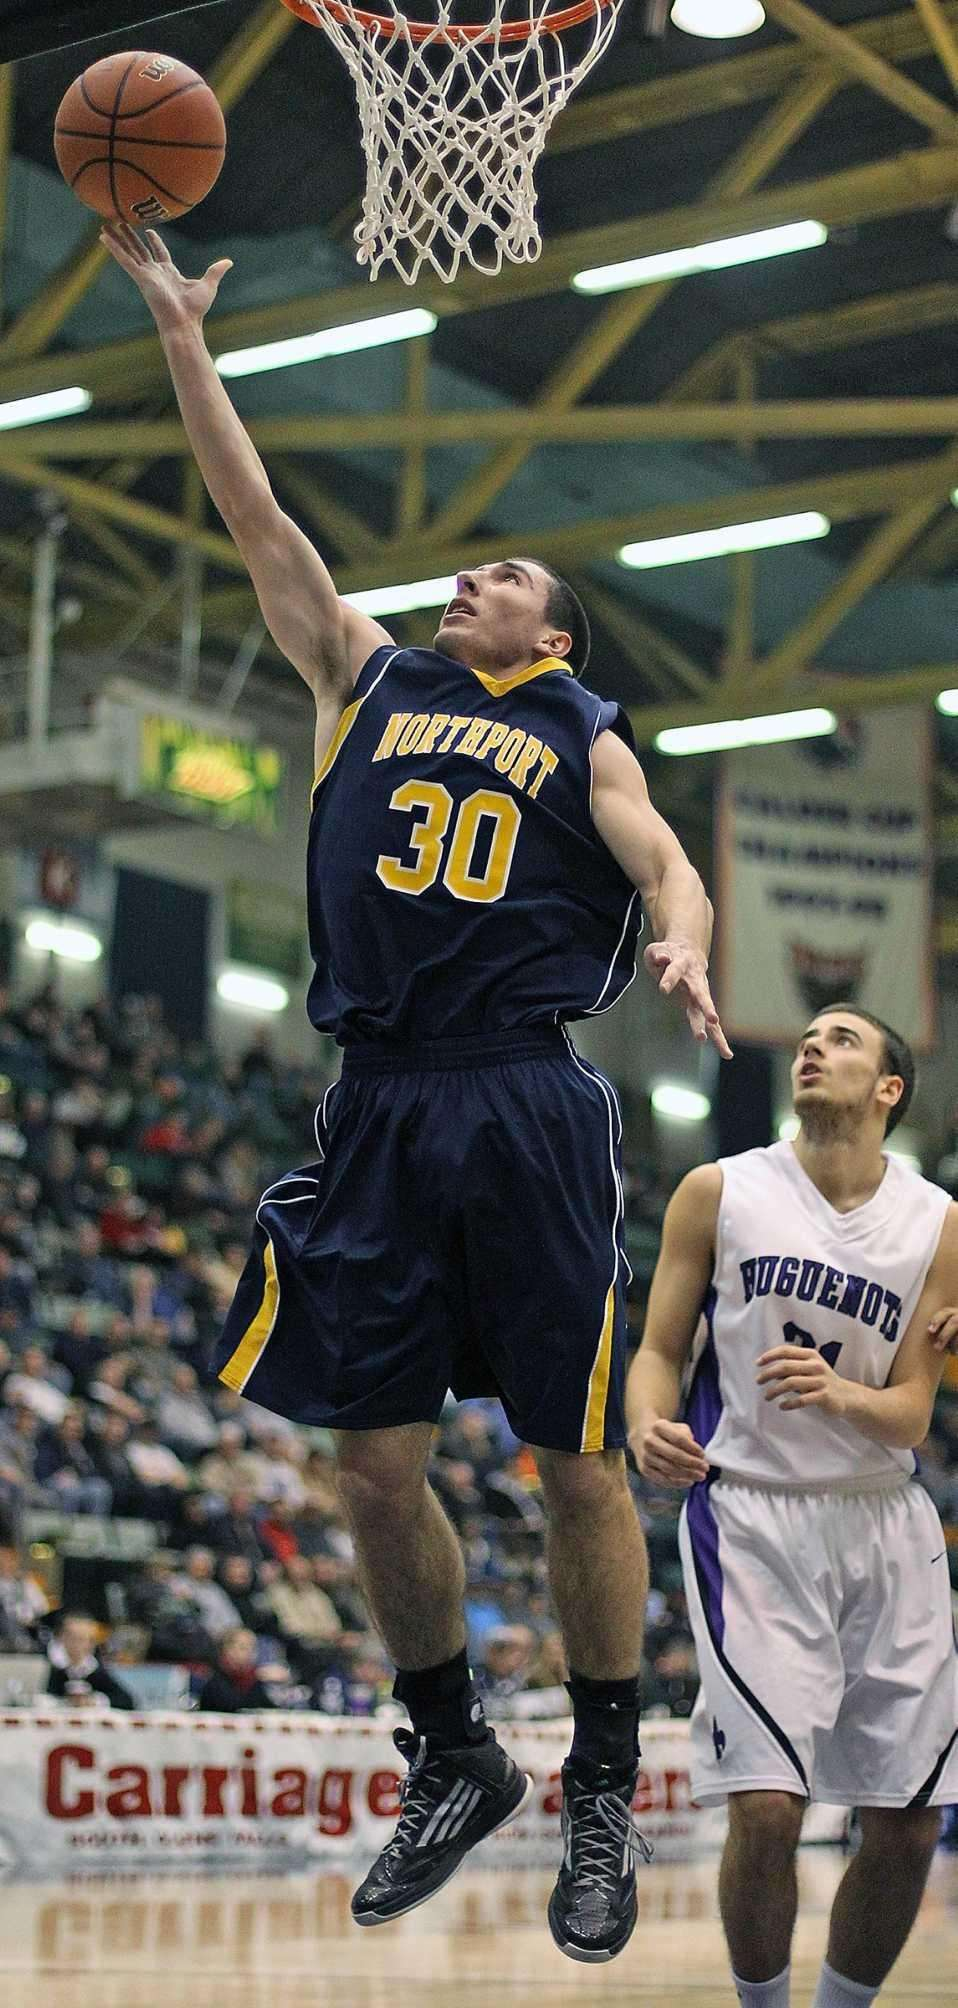 Northport's Matt Smith sinks basket during the New